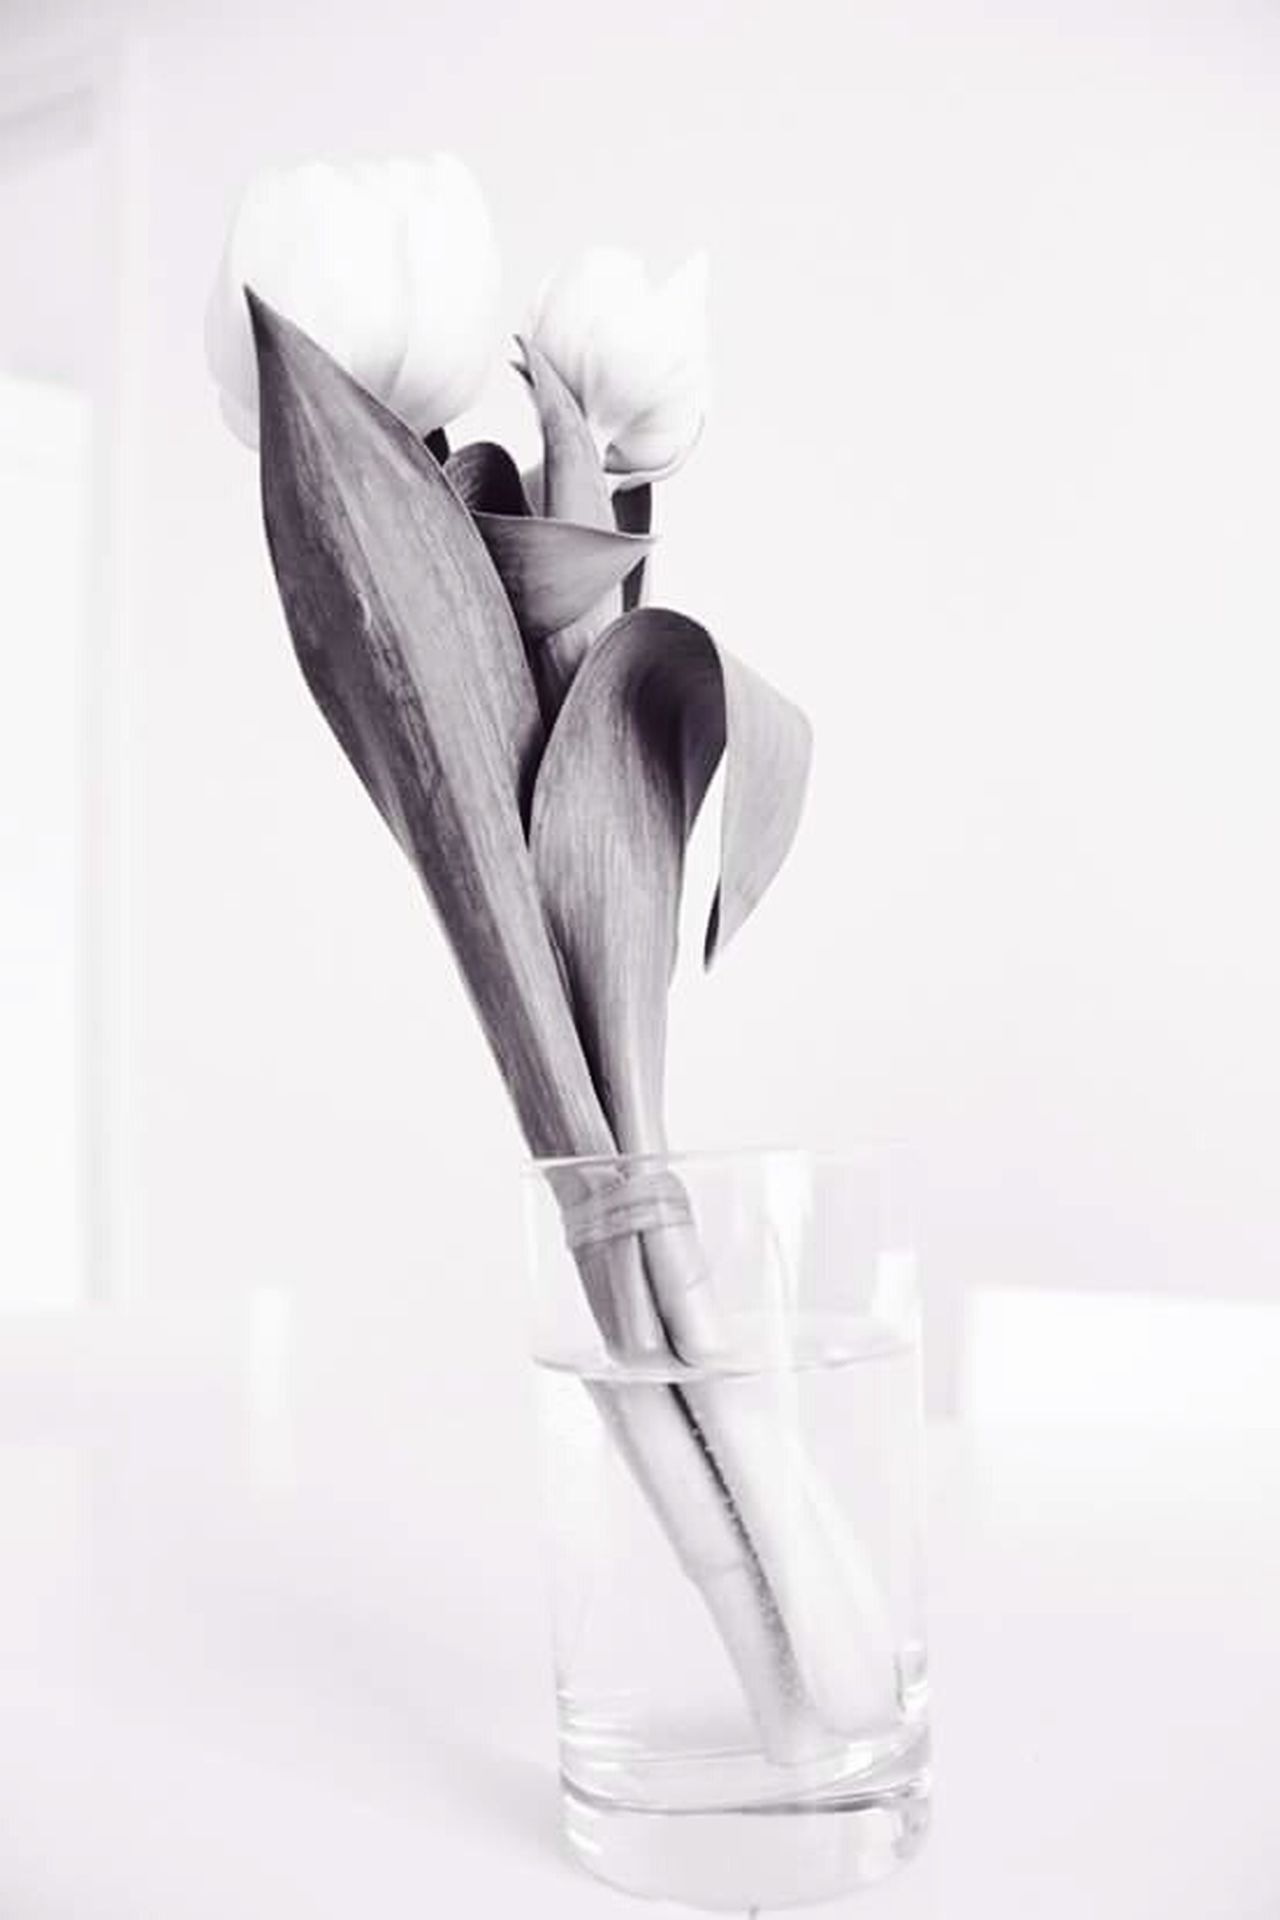 Monochrome Tulip Vase Deceptively Simple Flower Showing Imperfection überbelichtet